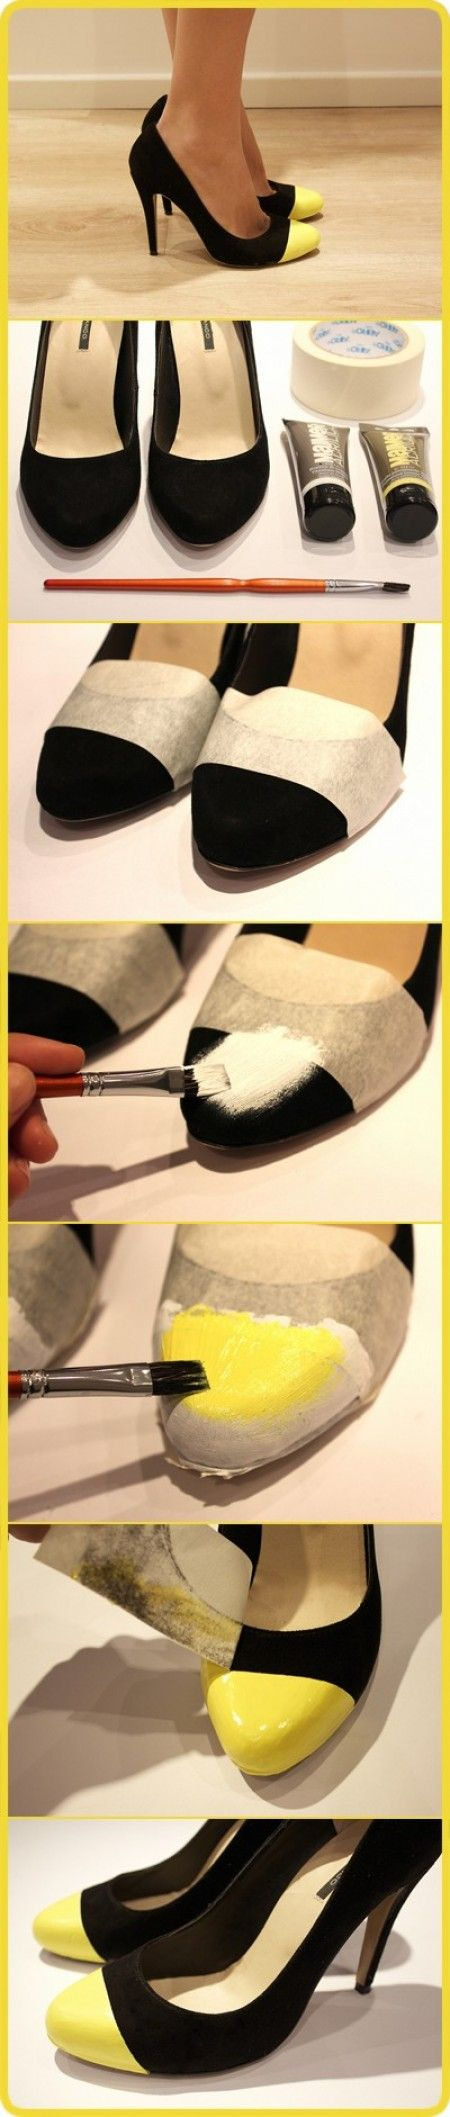 colour blocked shoes - tutorial   What a great way to upcycle a pair of shoes w/ scuffed toes!